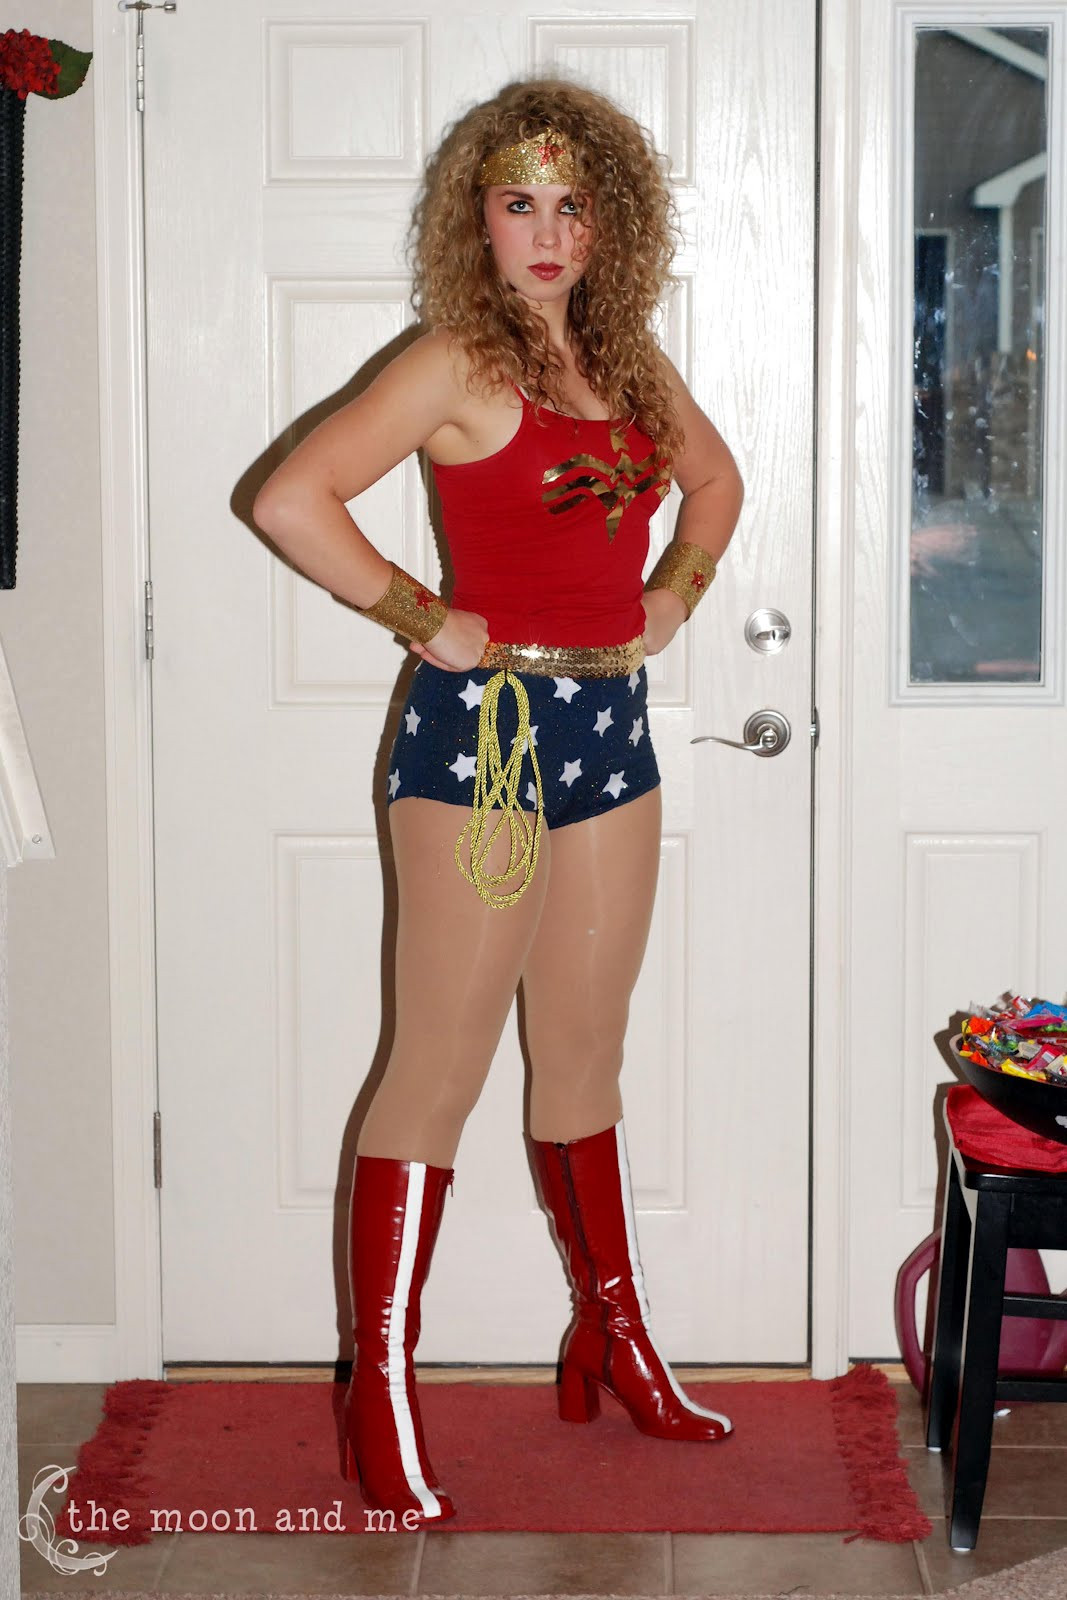 Best ideas about Woman Costume DIY . Save or Pin The Moon and Me DIY Wonder Woman Costume Now.